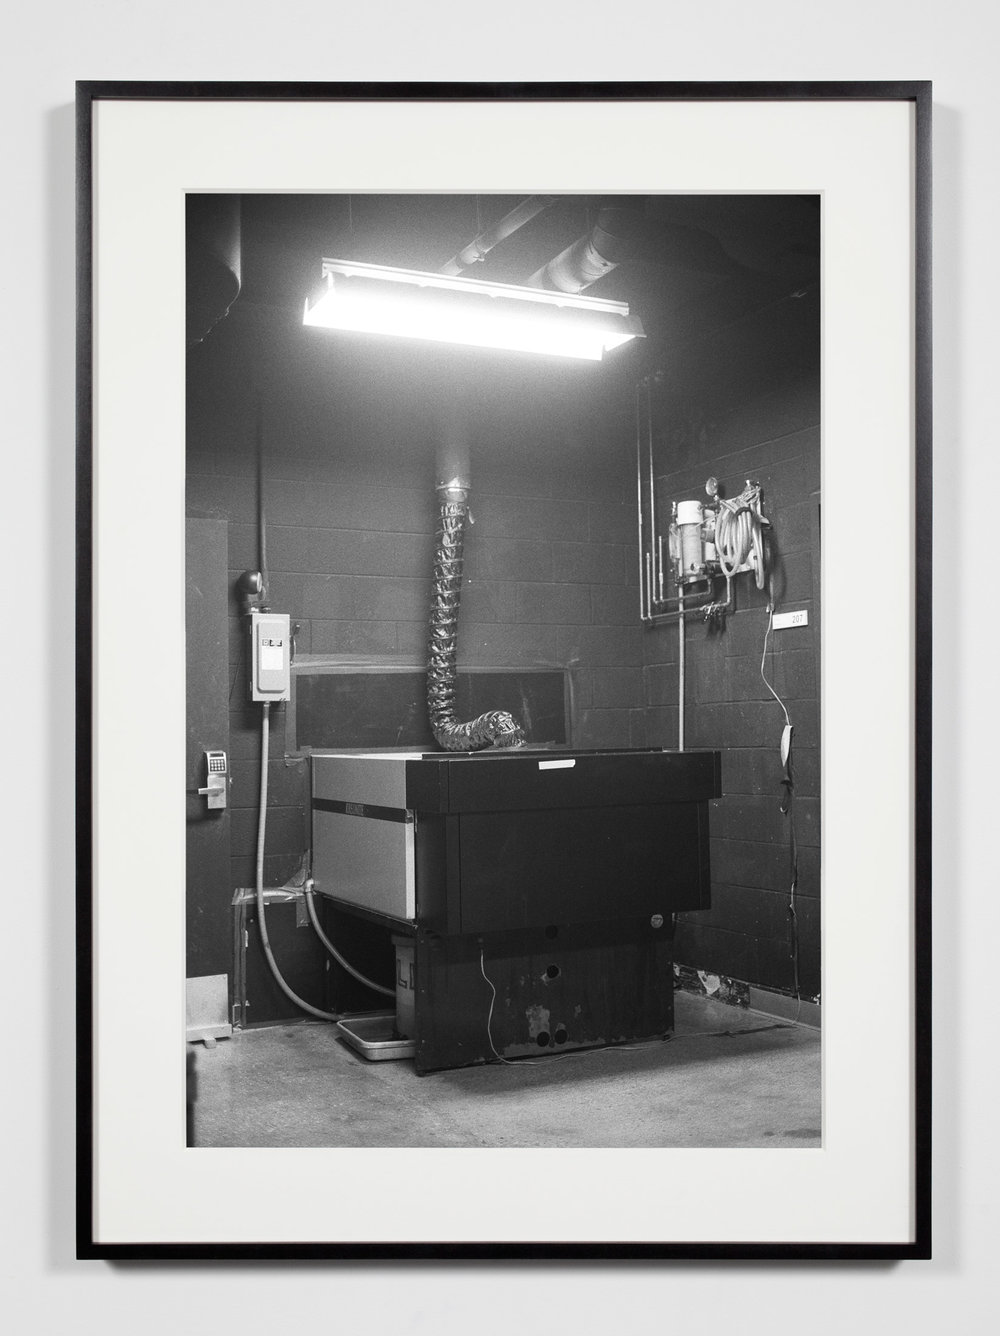 College Darkroom, Color Photographic Processor, Chicago, Illinois, August 21, 2008   2011  Epson Ultrachrome K3 archival ink jet print on Hahnemühle Photo Rag paper  36 3/8 x 26 3/8 inches   Industrial Portraits, 2008–    A Diagram of Forces, 2011